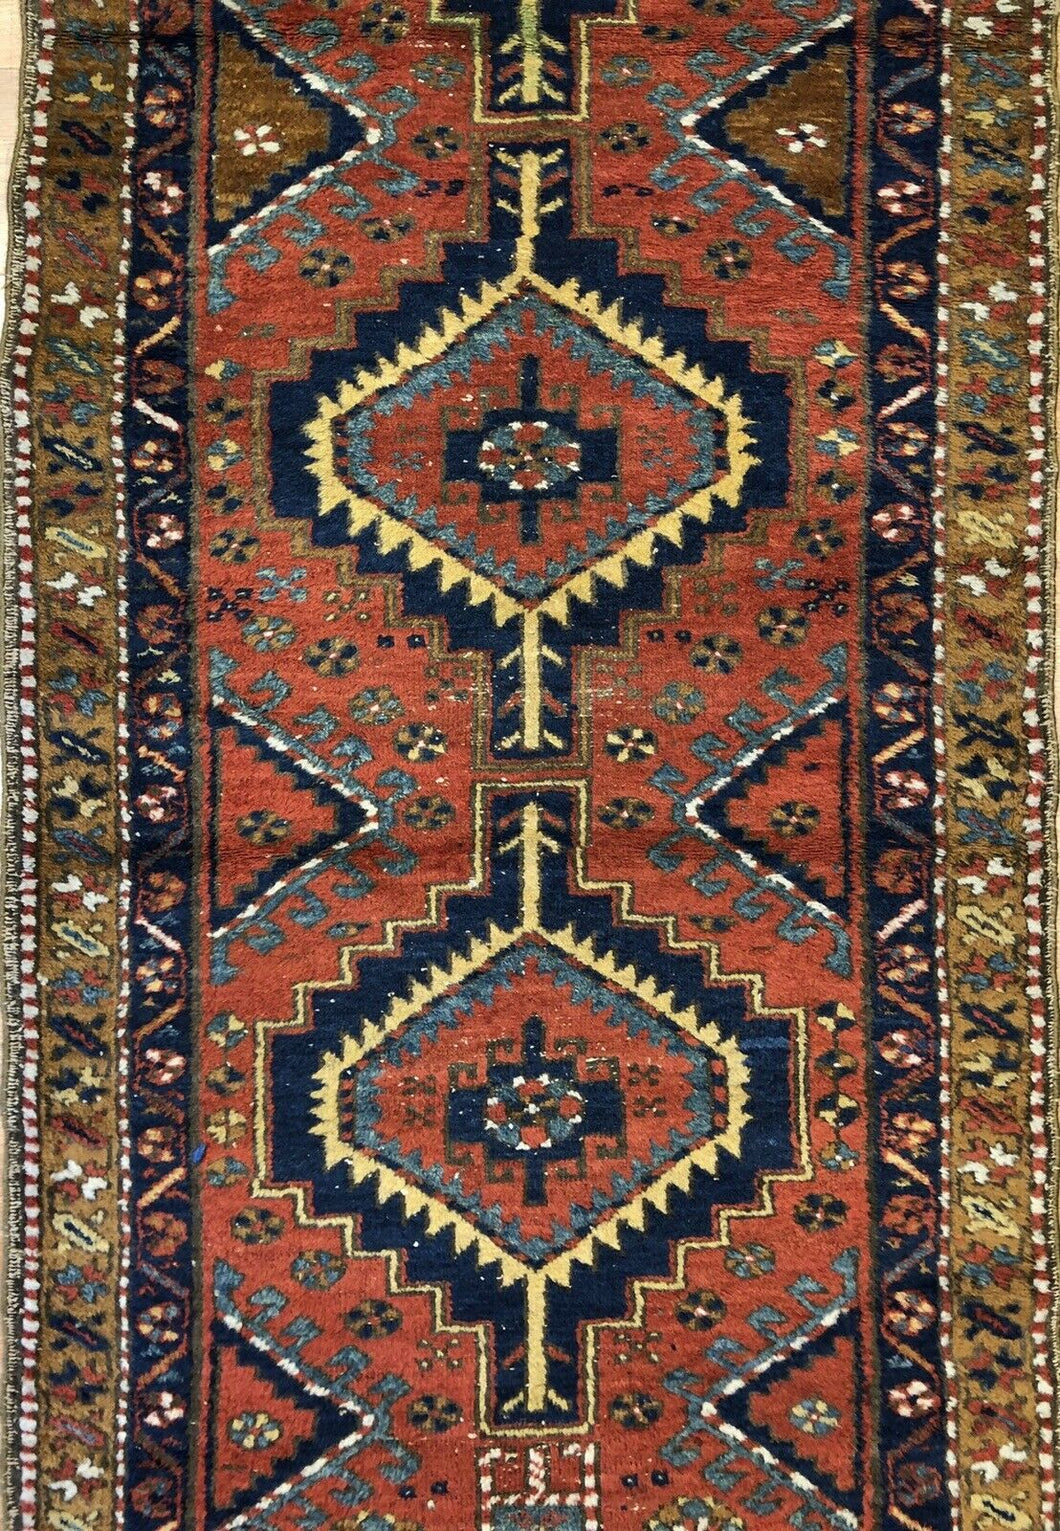 Tremendous Tribal - 1920s Antique Kurdish Rug - Oriental Runner - 3'3